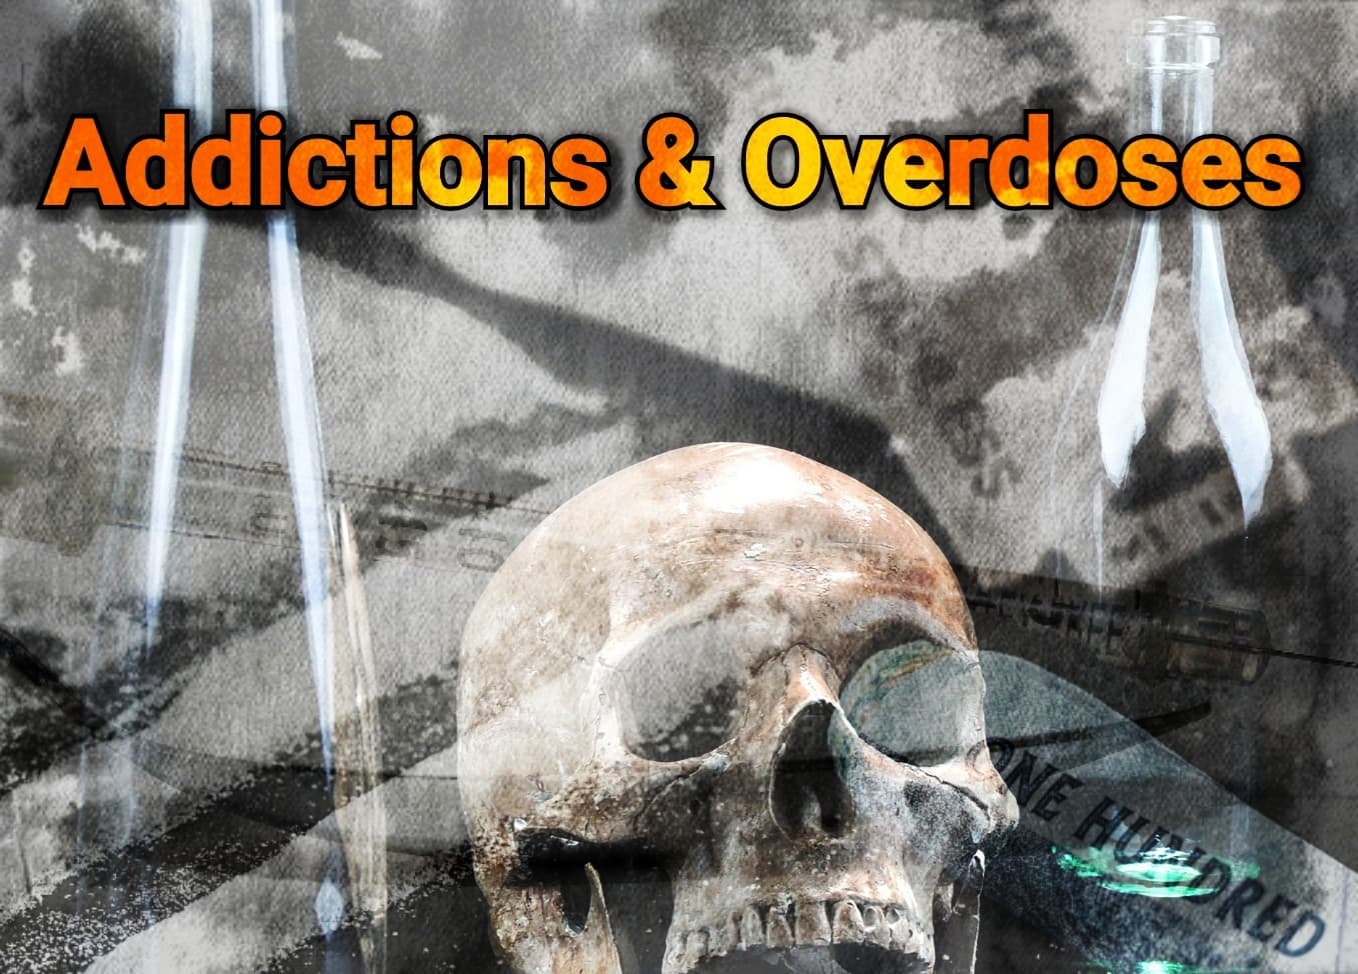 Addictions and Overdoses (THERES ALWAYS A WAY BACK)